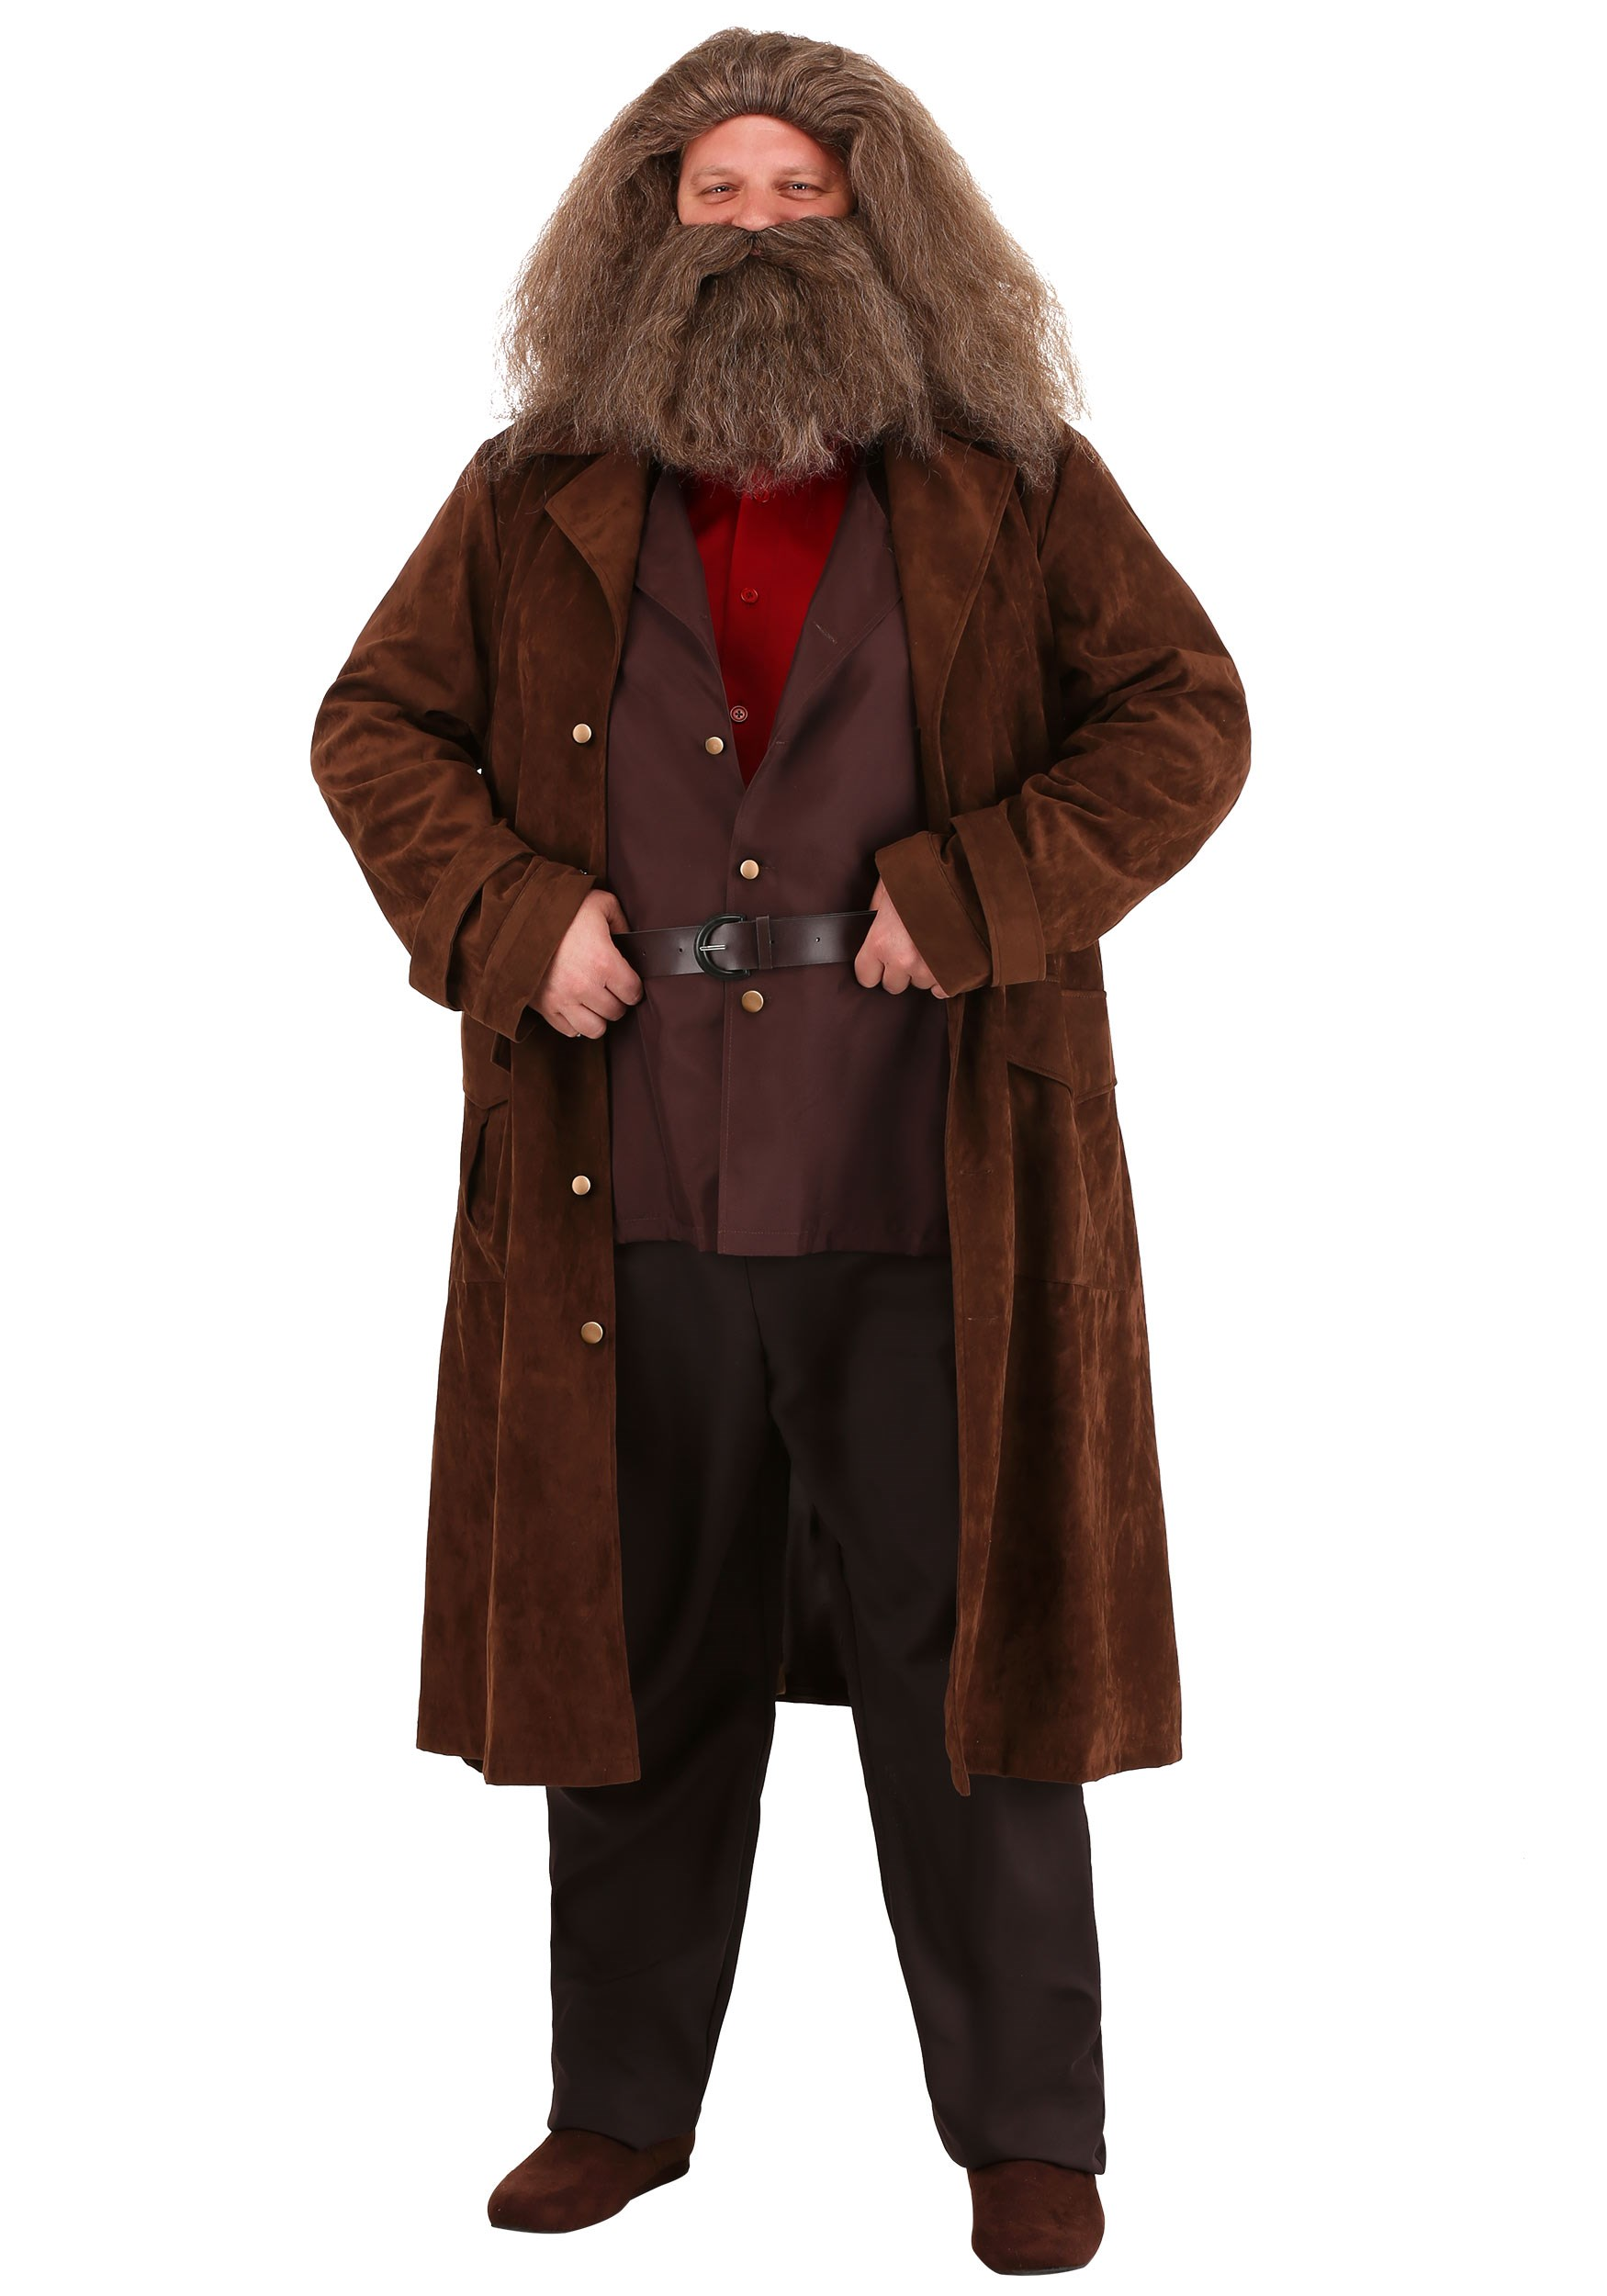 Deluxe Plus Size Harry Potter Hagrid Costume